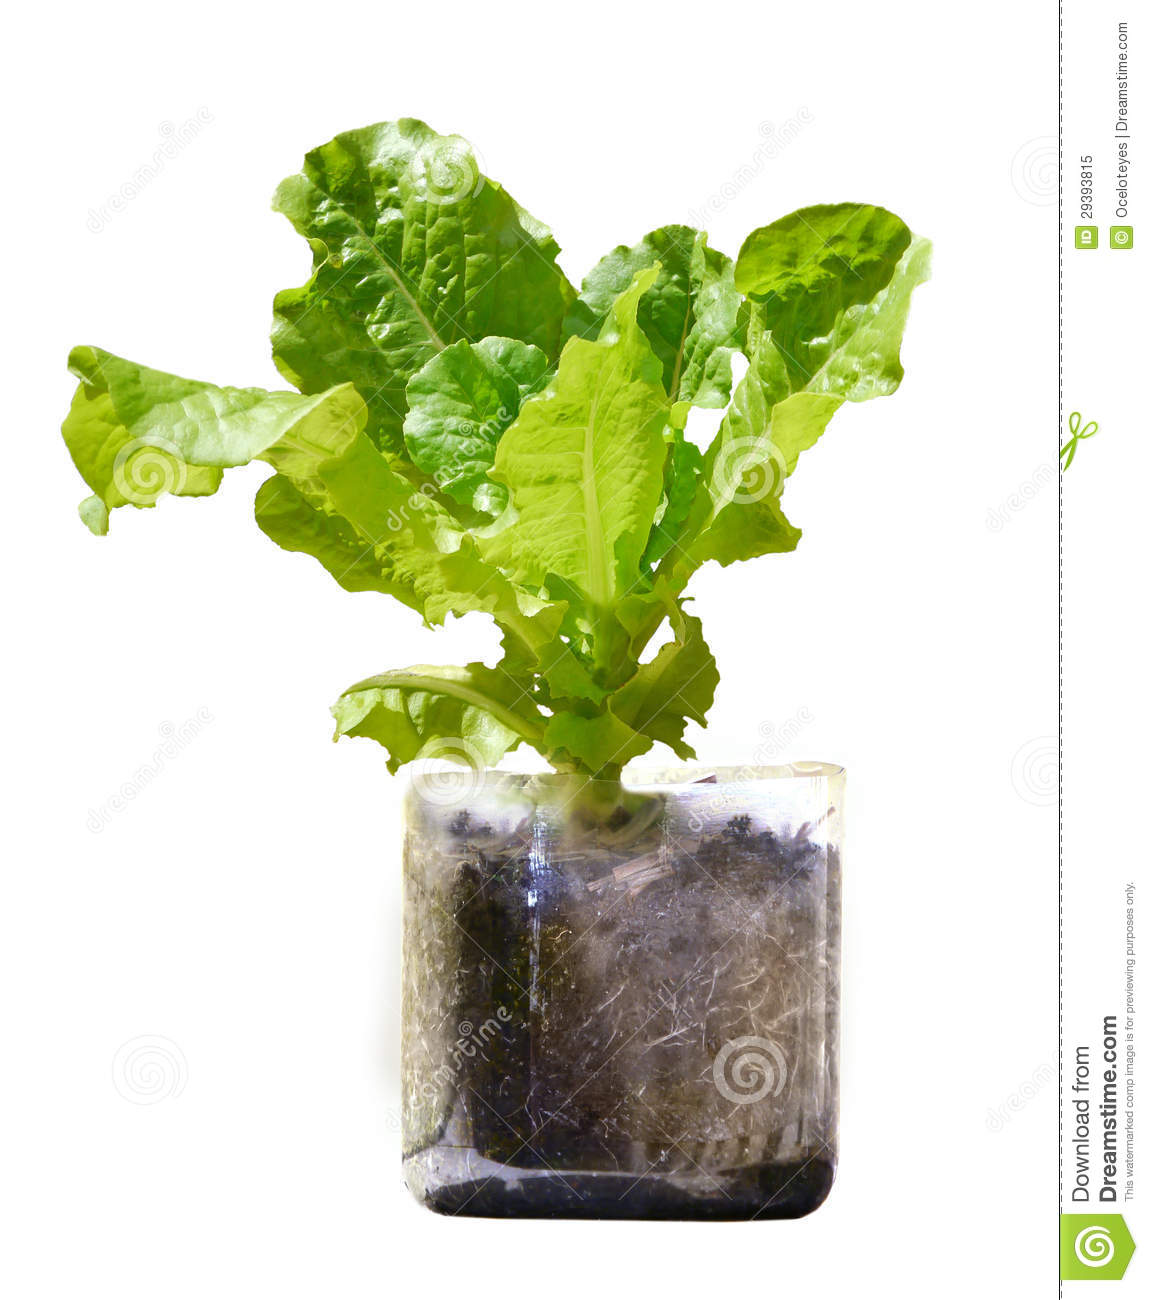 Lettuce Plant Growing In Recycled Plastic Bottle Royalty